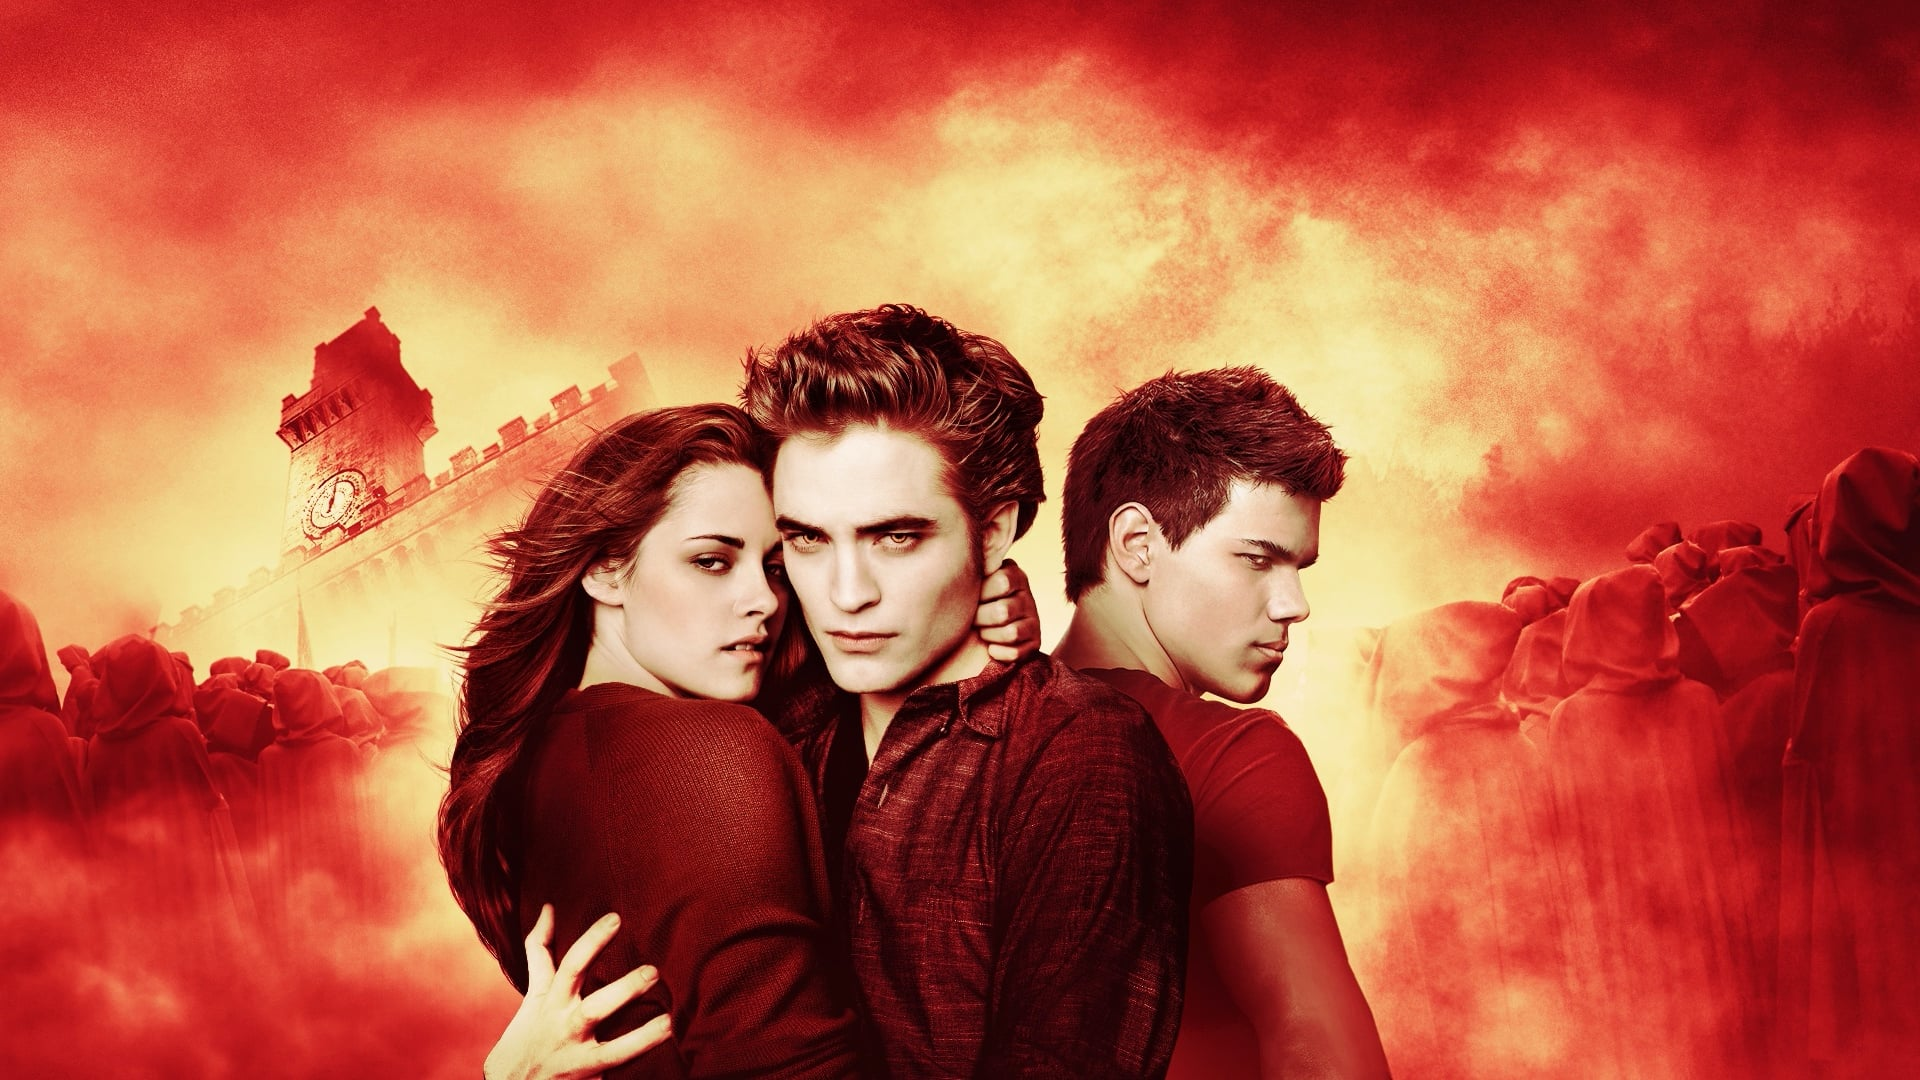 twilight new moon ganzer film deutsch